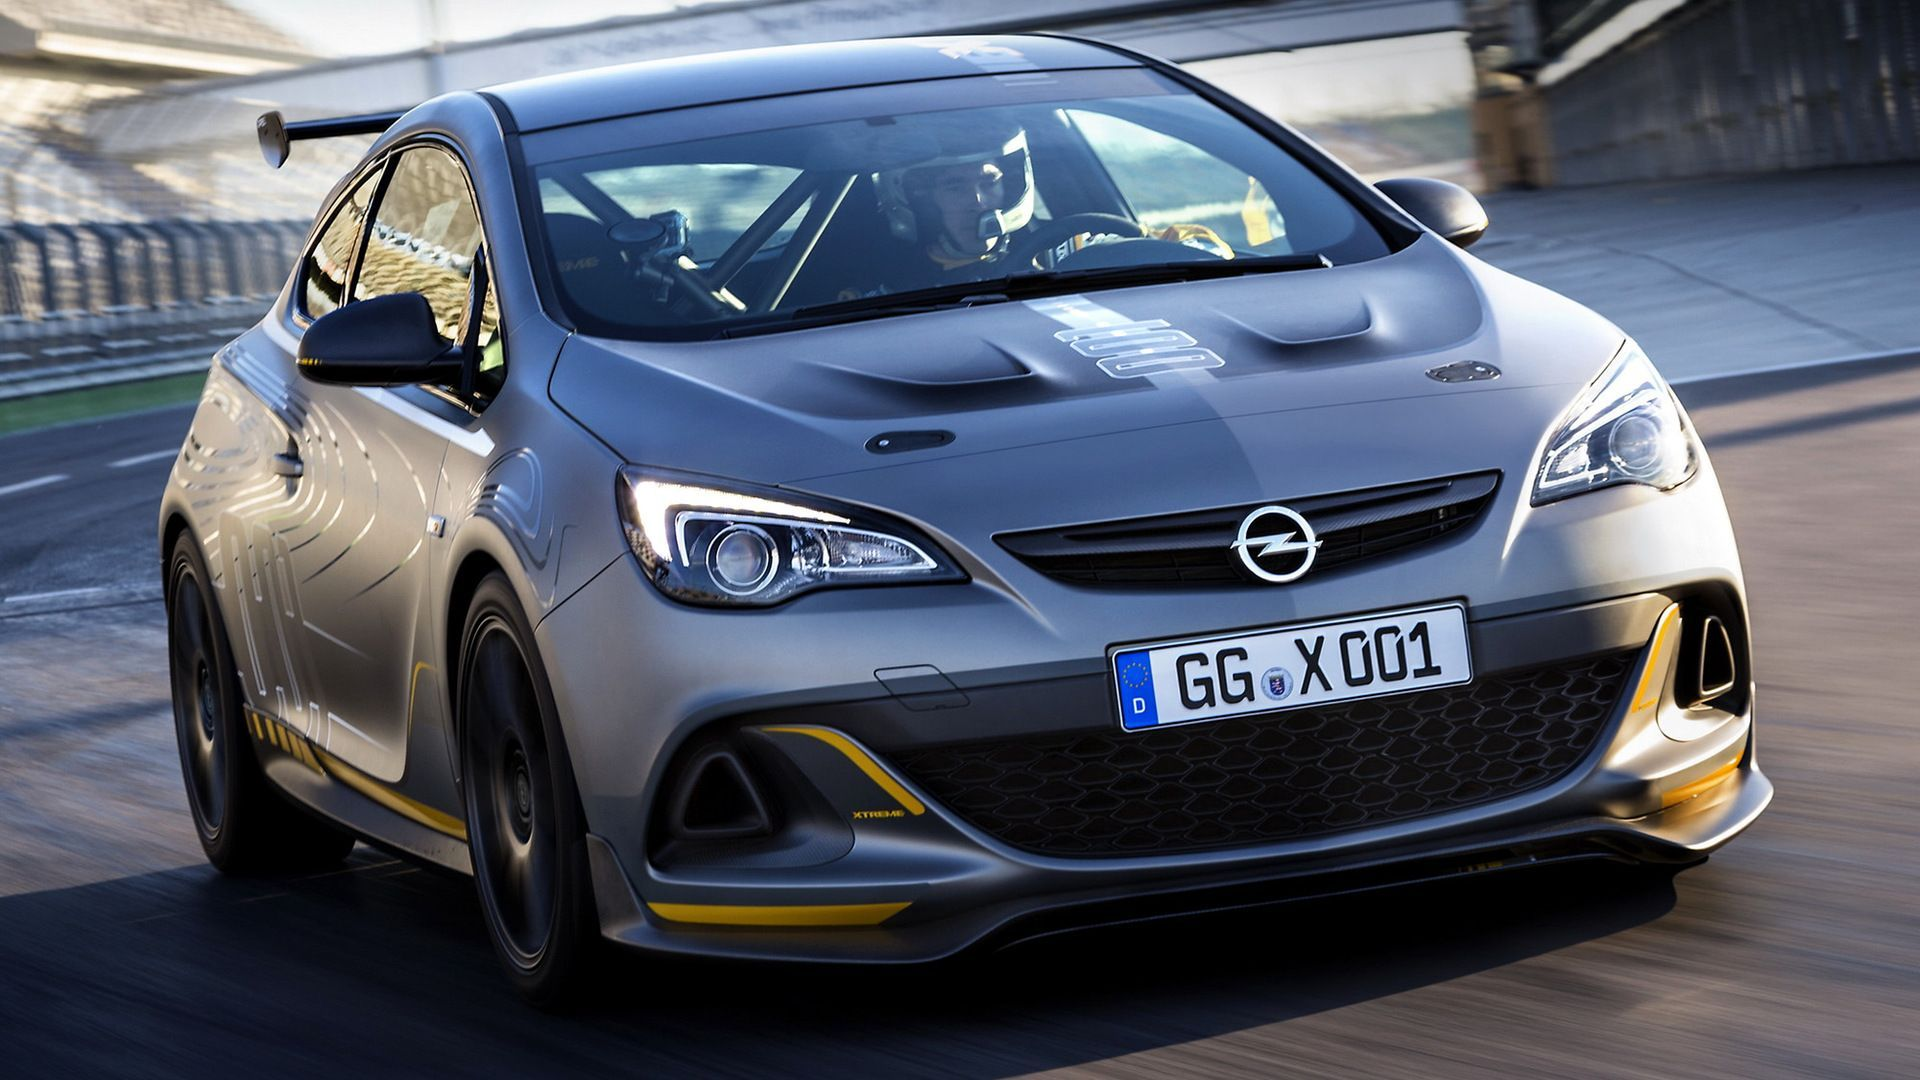 Opel Astra Wallpapers Top Free Opel Astra Backgrounds Wallpaperaccess